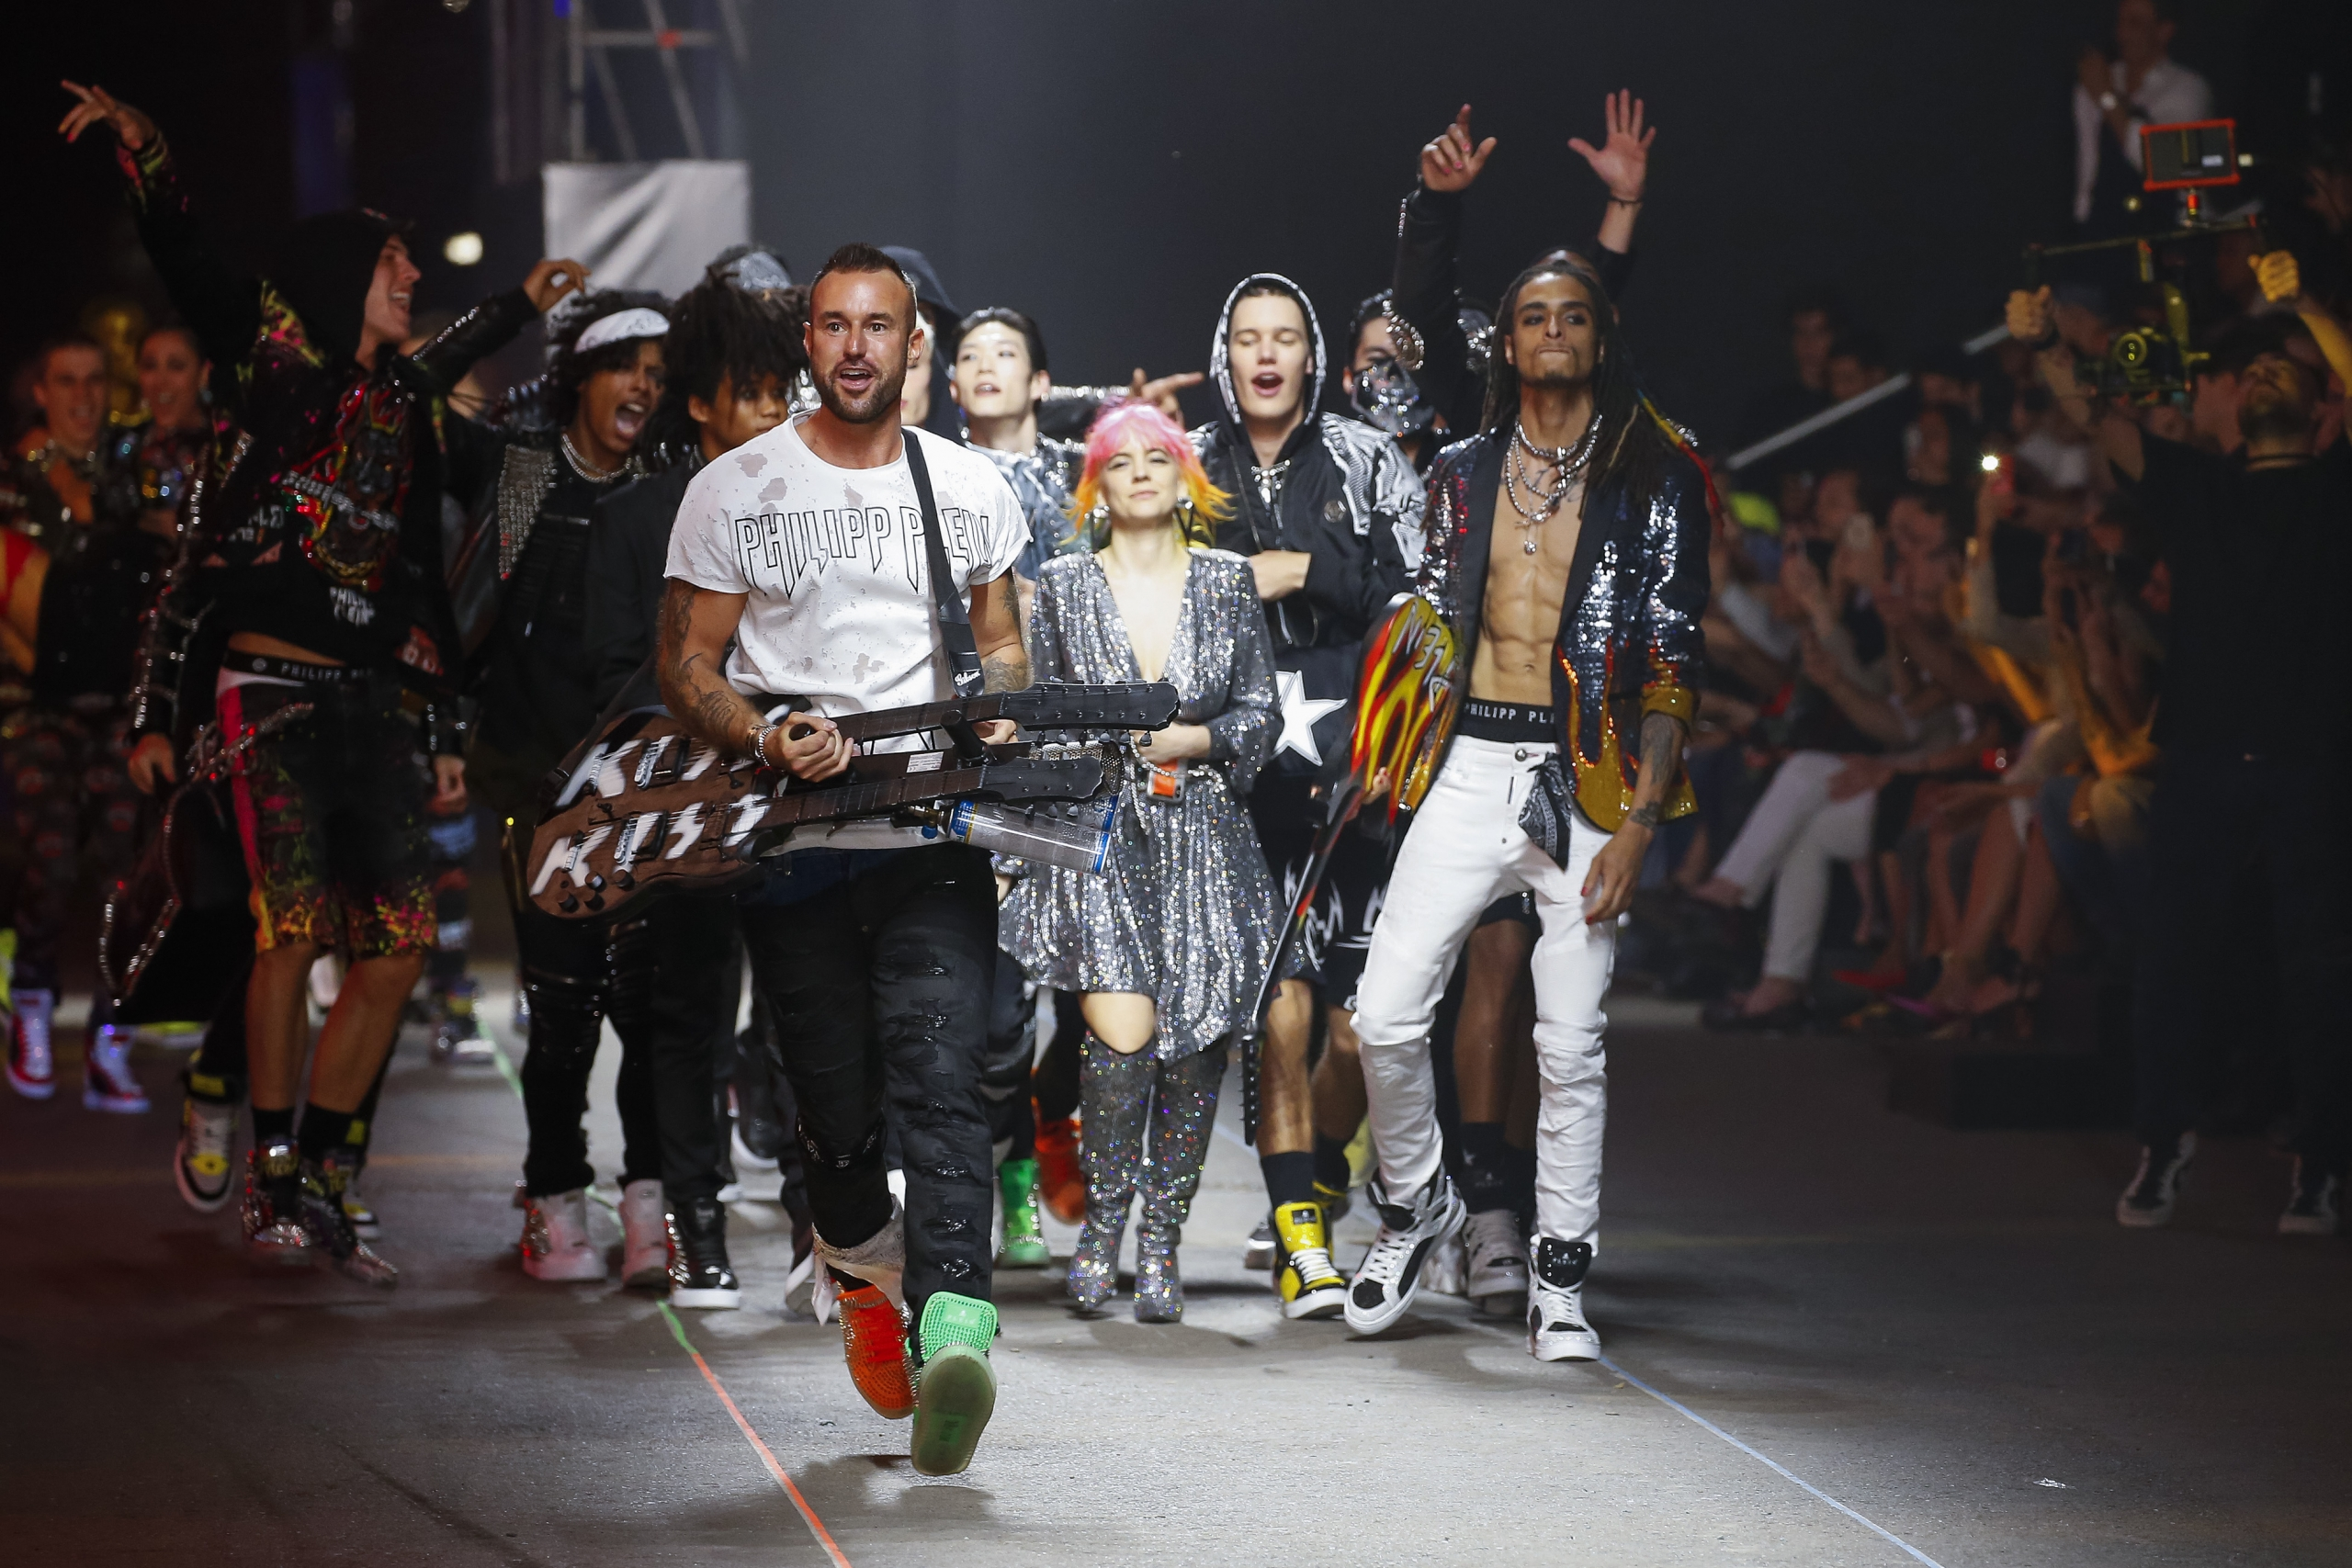 Philipp Plein Becomes First Major Fashion Brand to Accept Crypto Payments